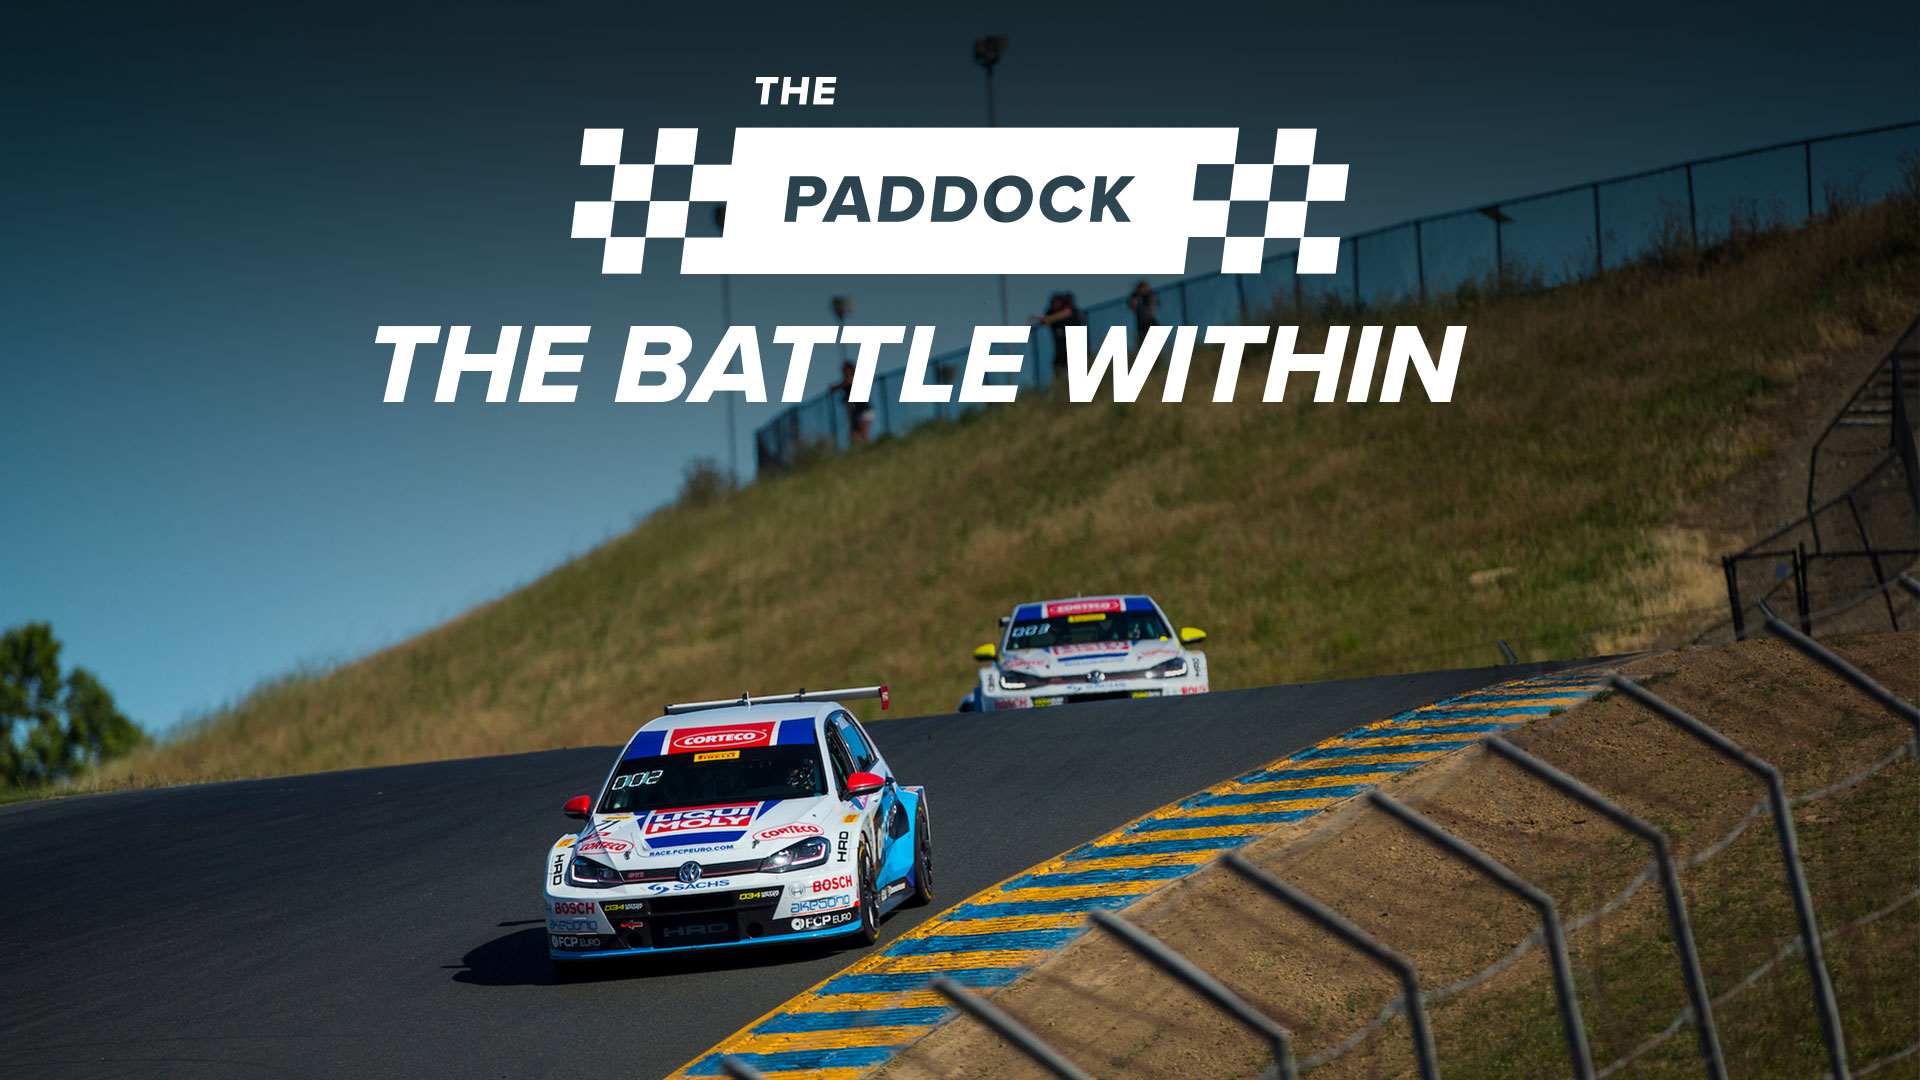 The Battle Within - The Paddock Season Two, Episode Five